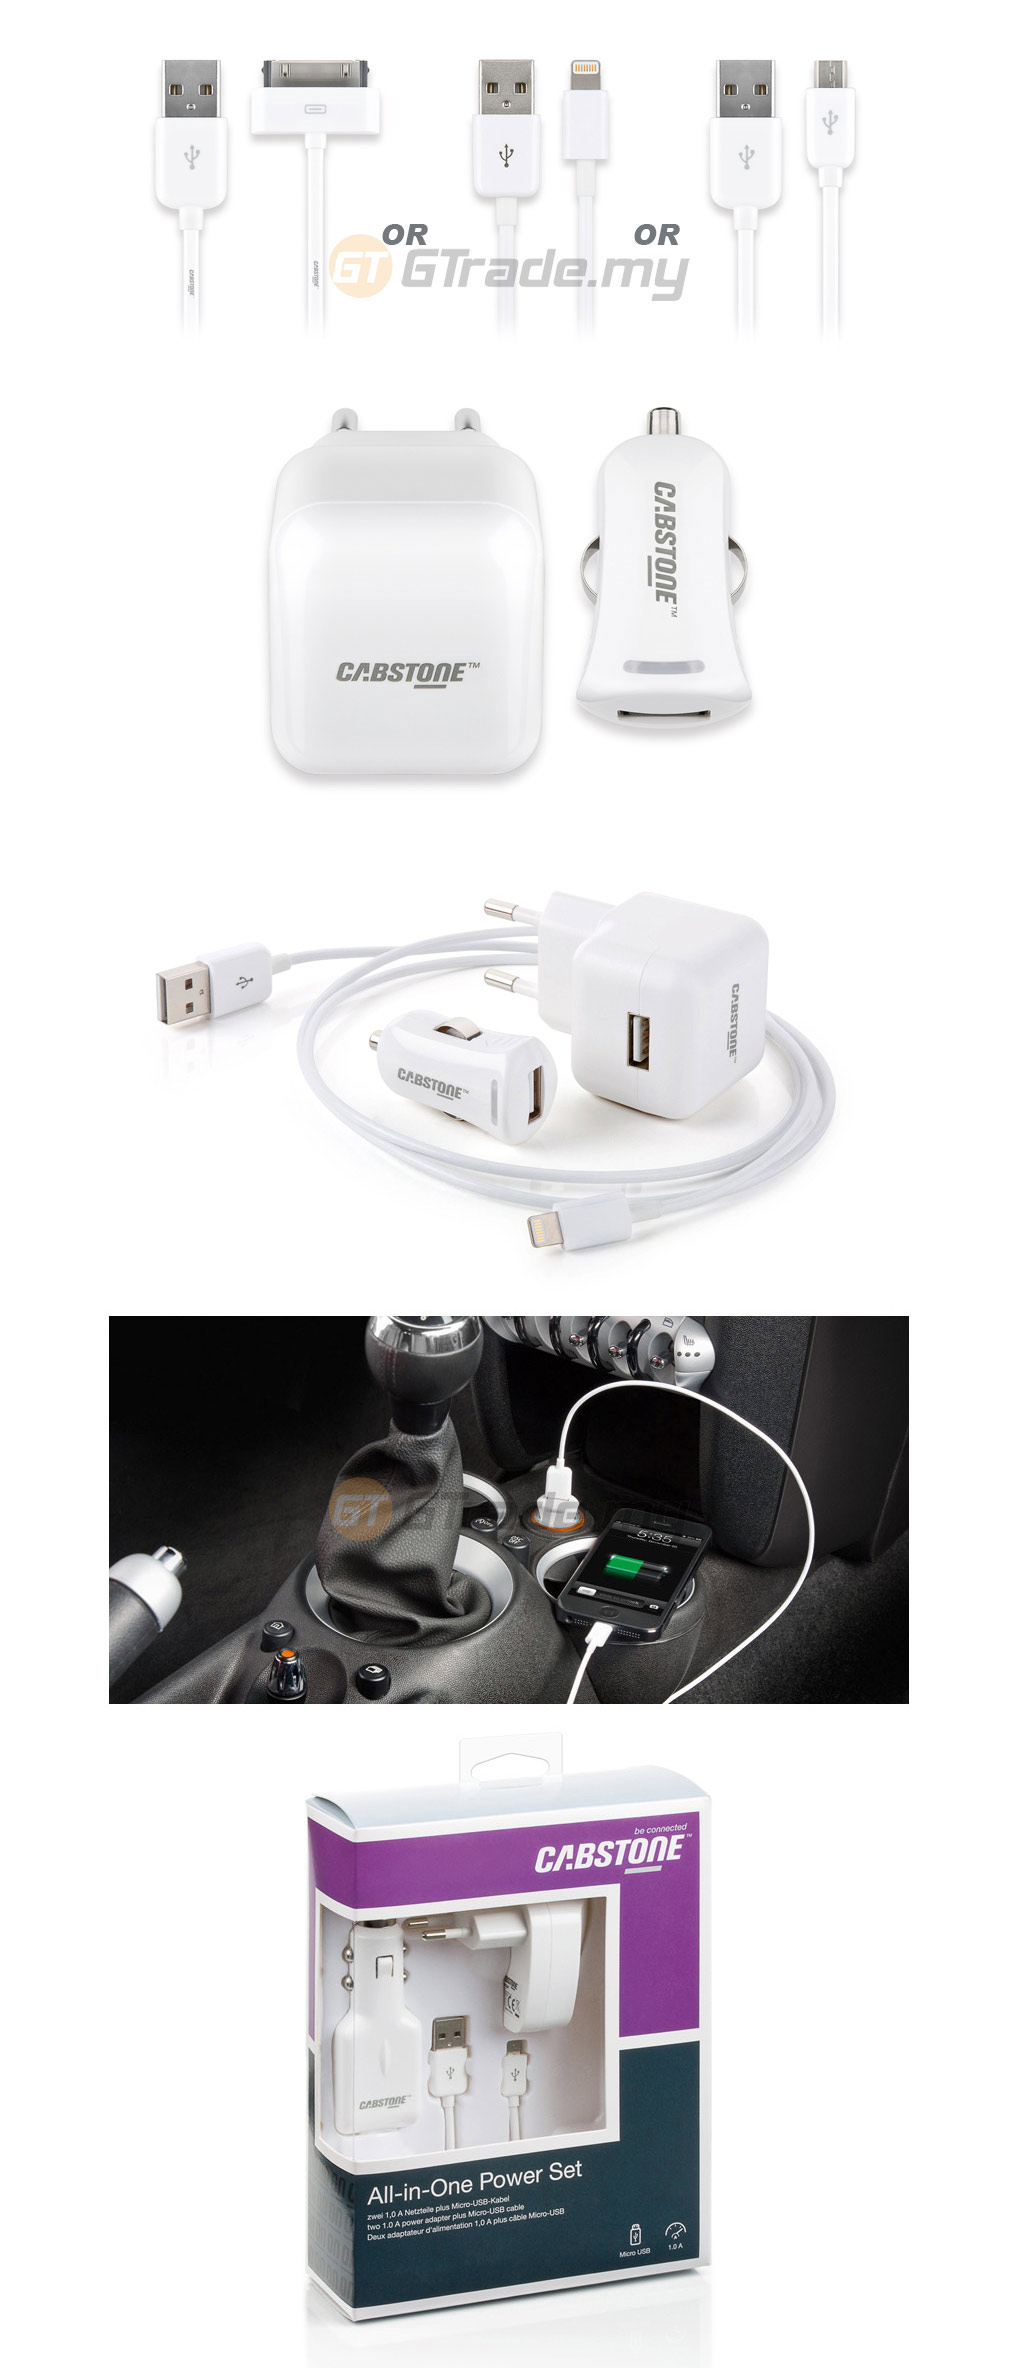 cabstone-3-in-1-sync-data-usb-cable-car-travel-wall-charger-set